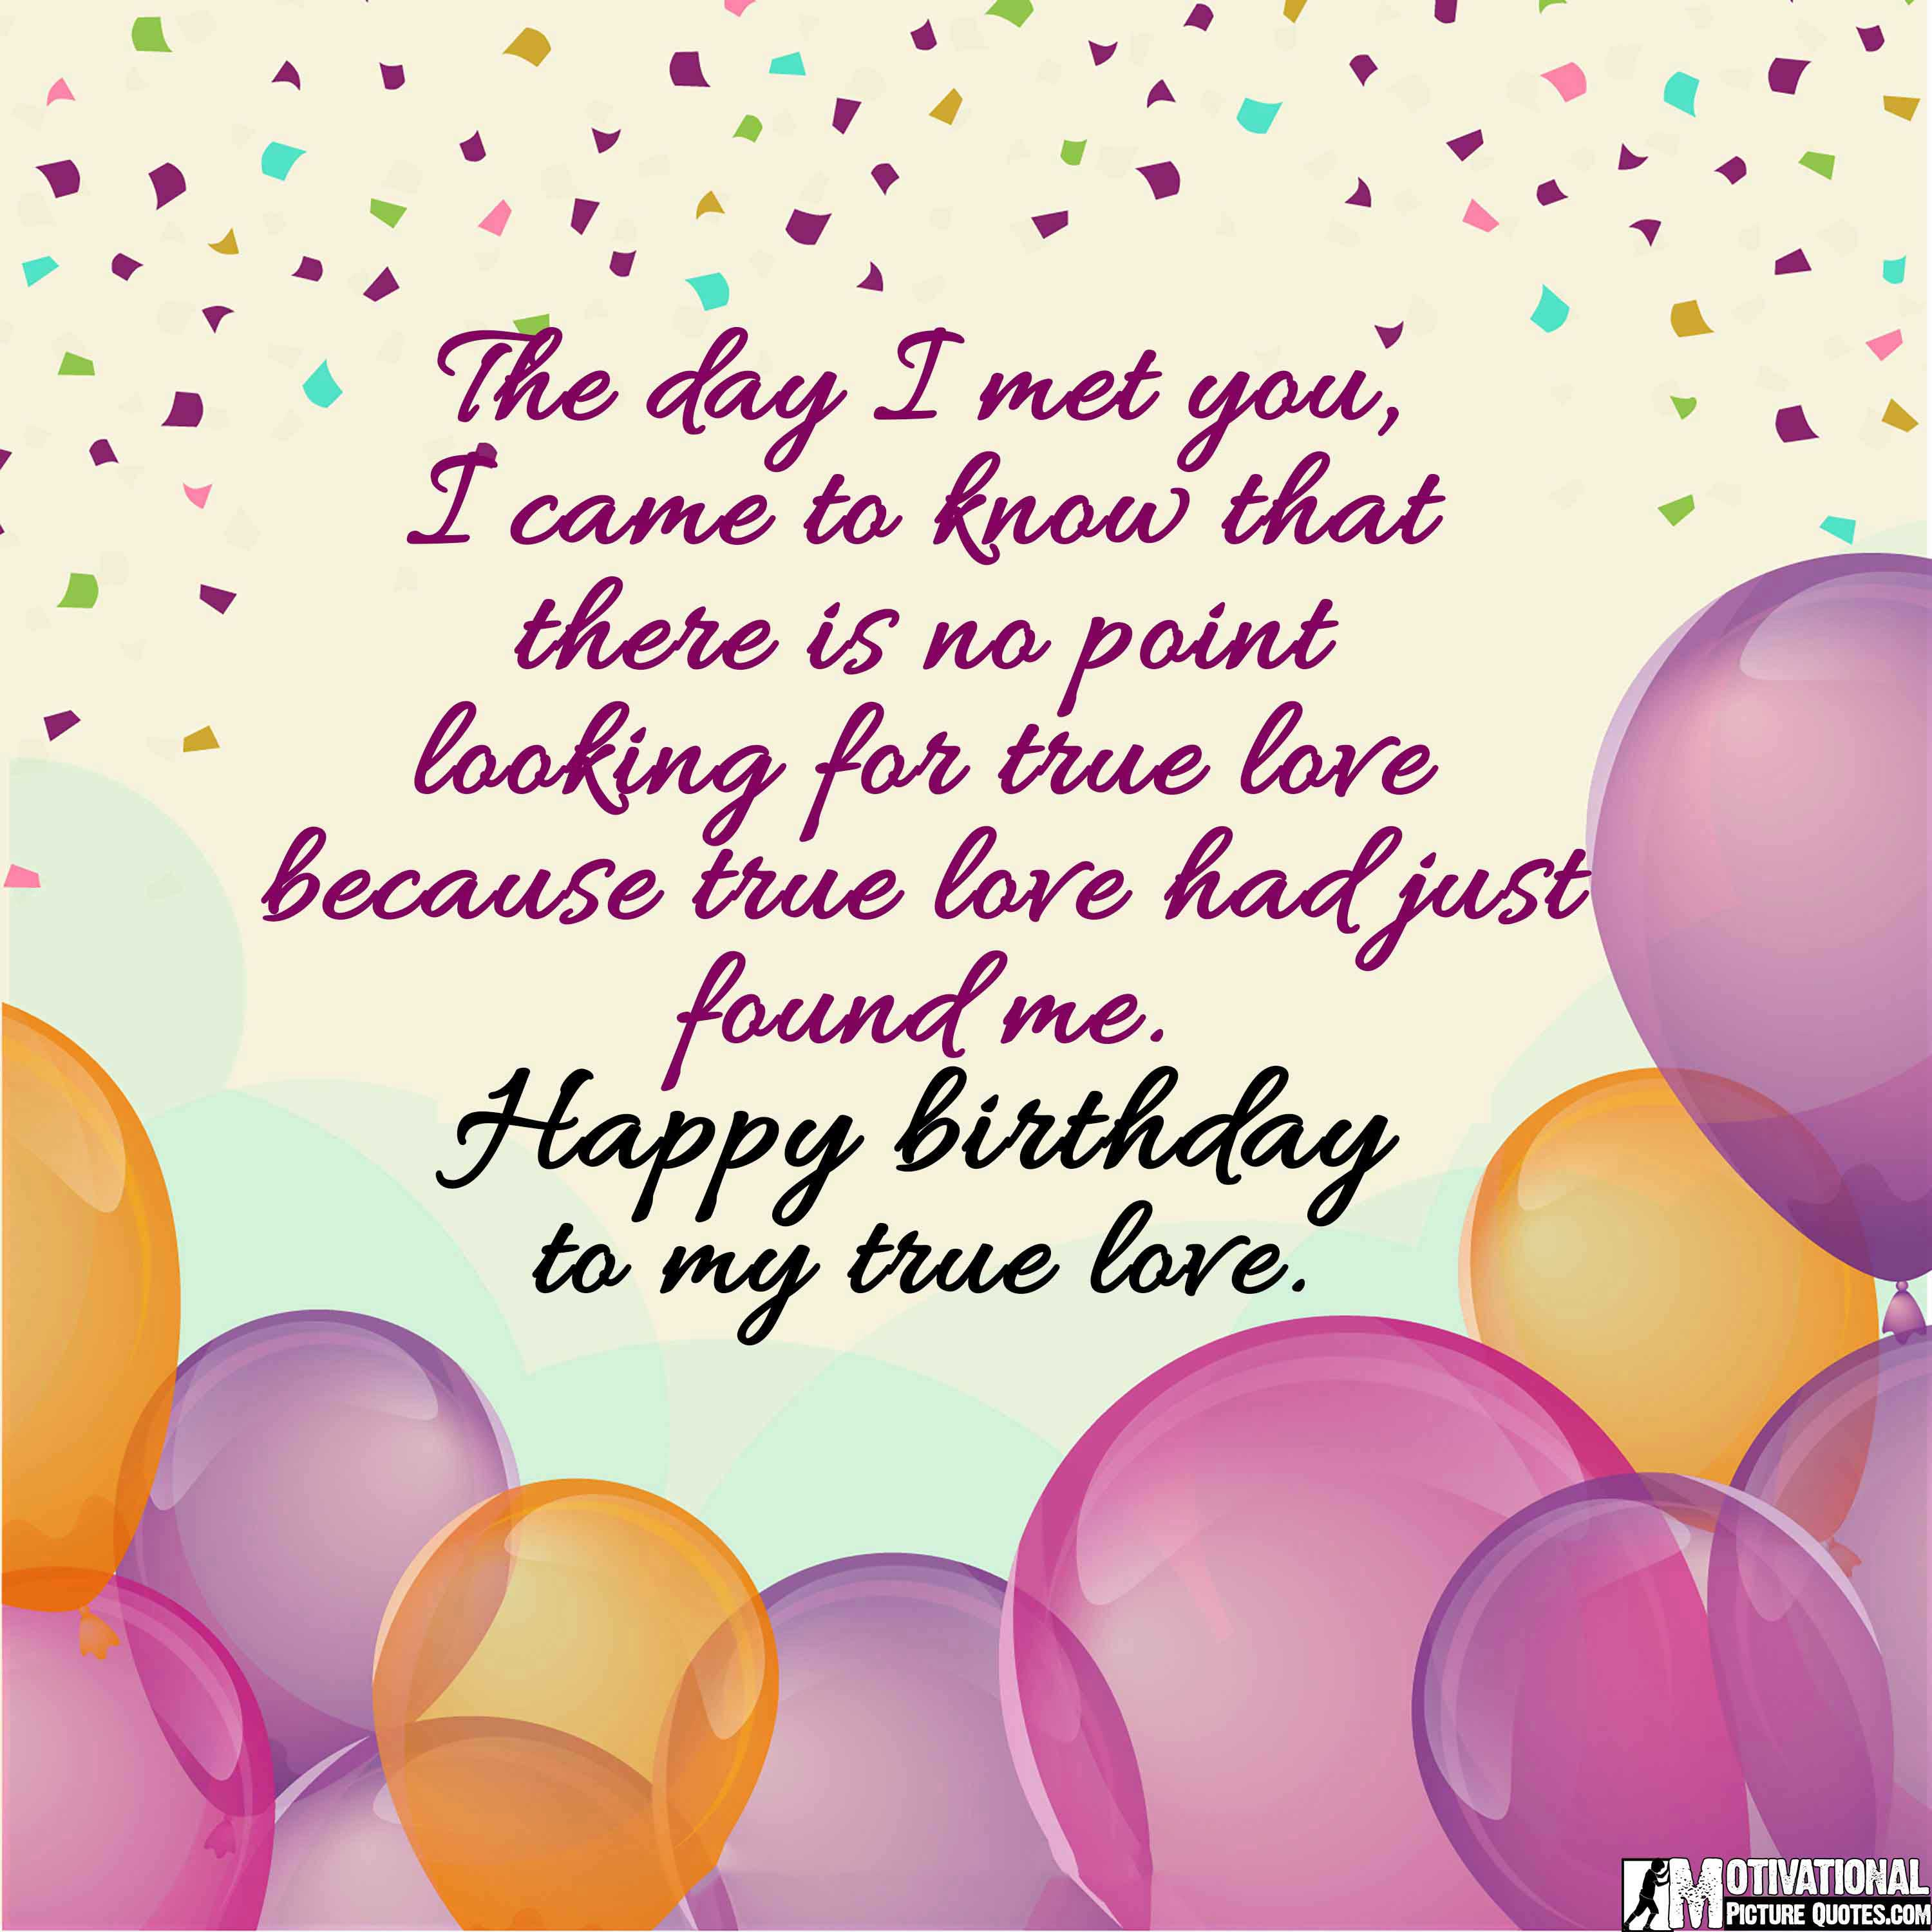 Happy Love Quotes For Her: 35+ Inspirational Birthday Quotes Images